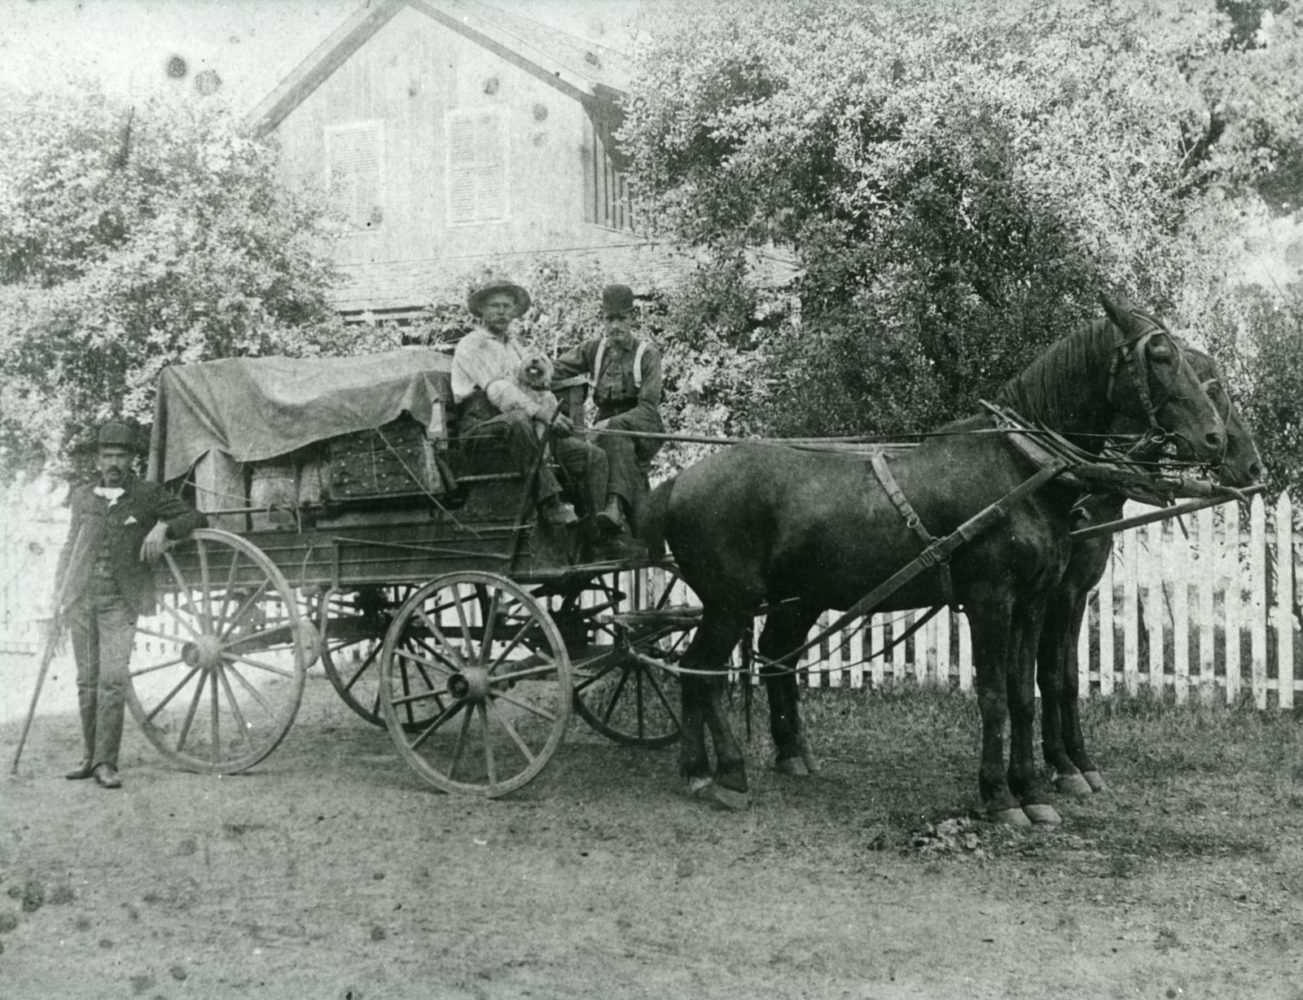 Men with supplies on horse and carriage outside the Woodside Store